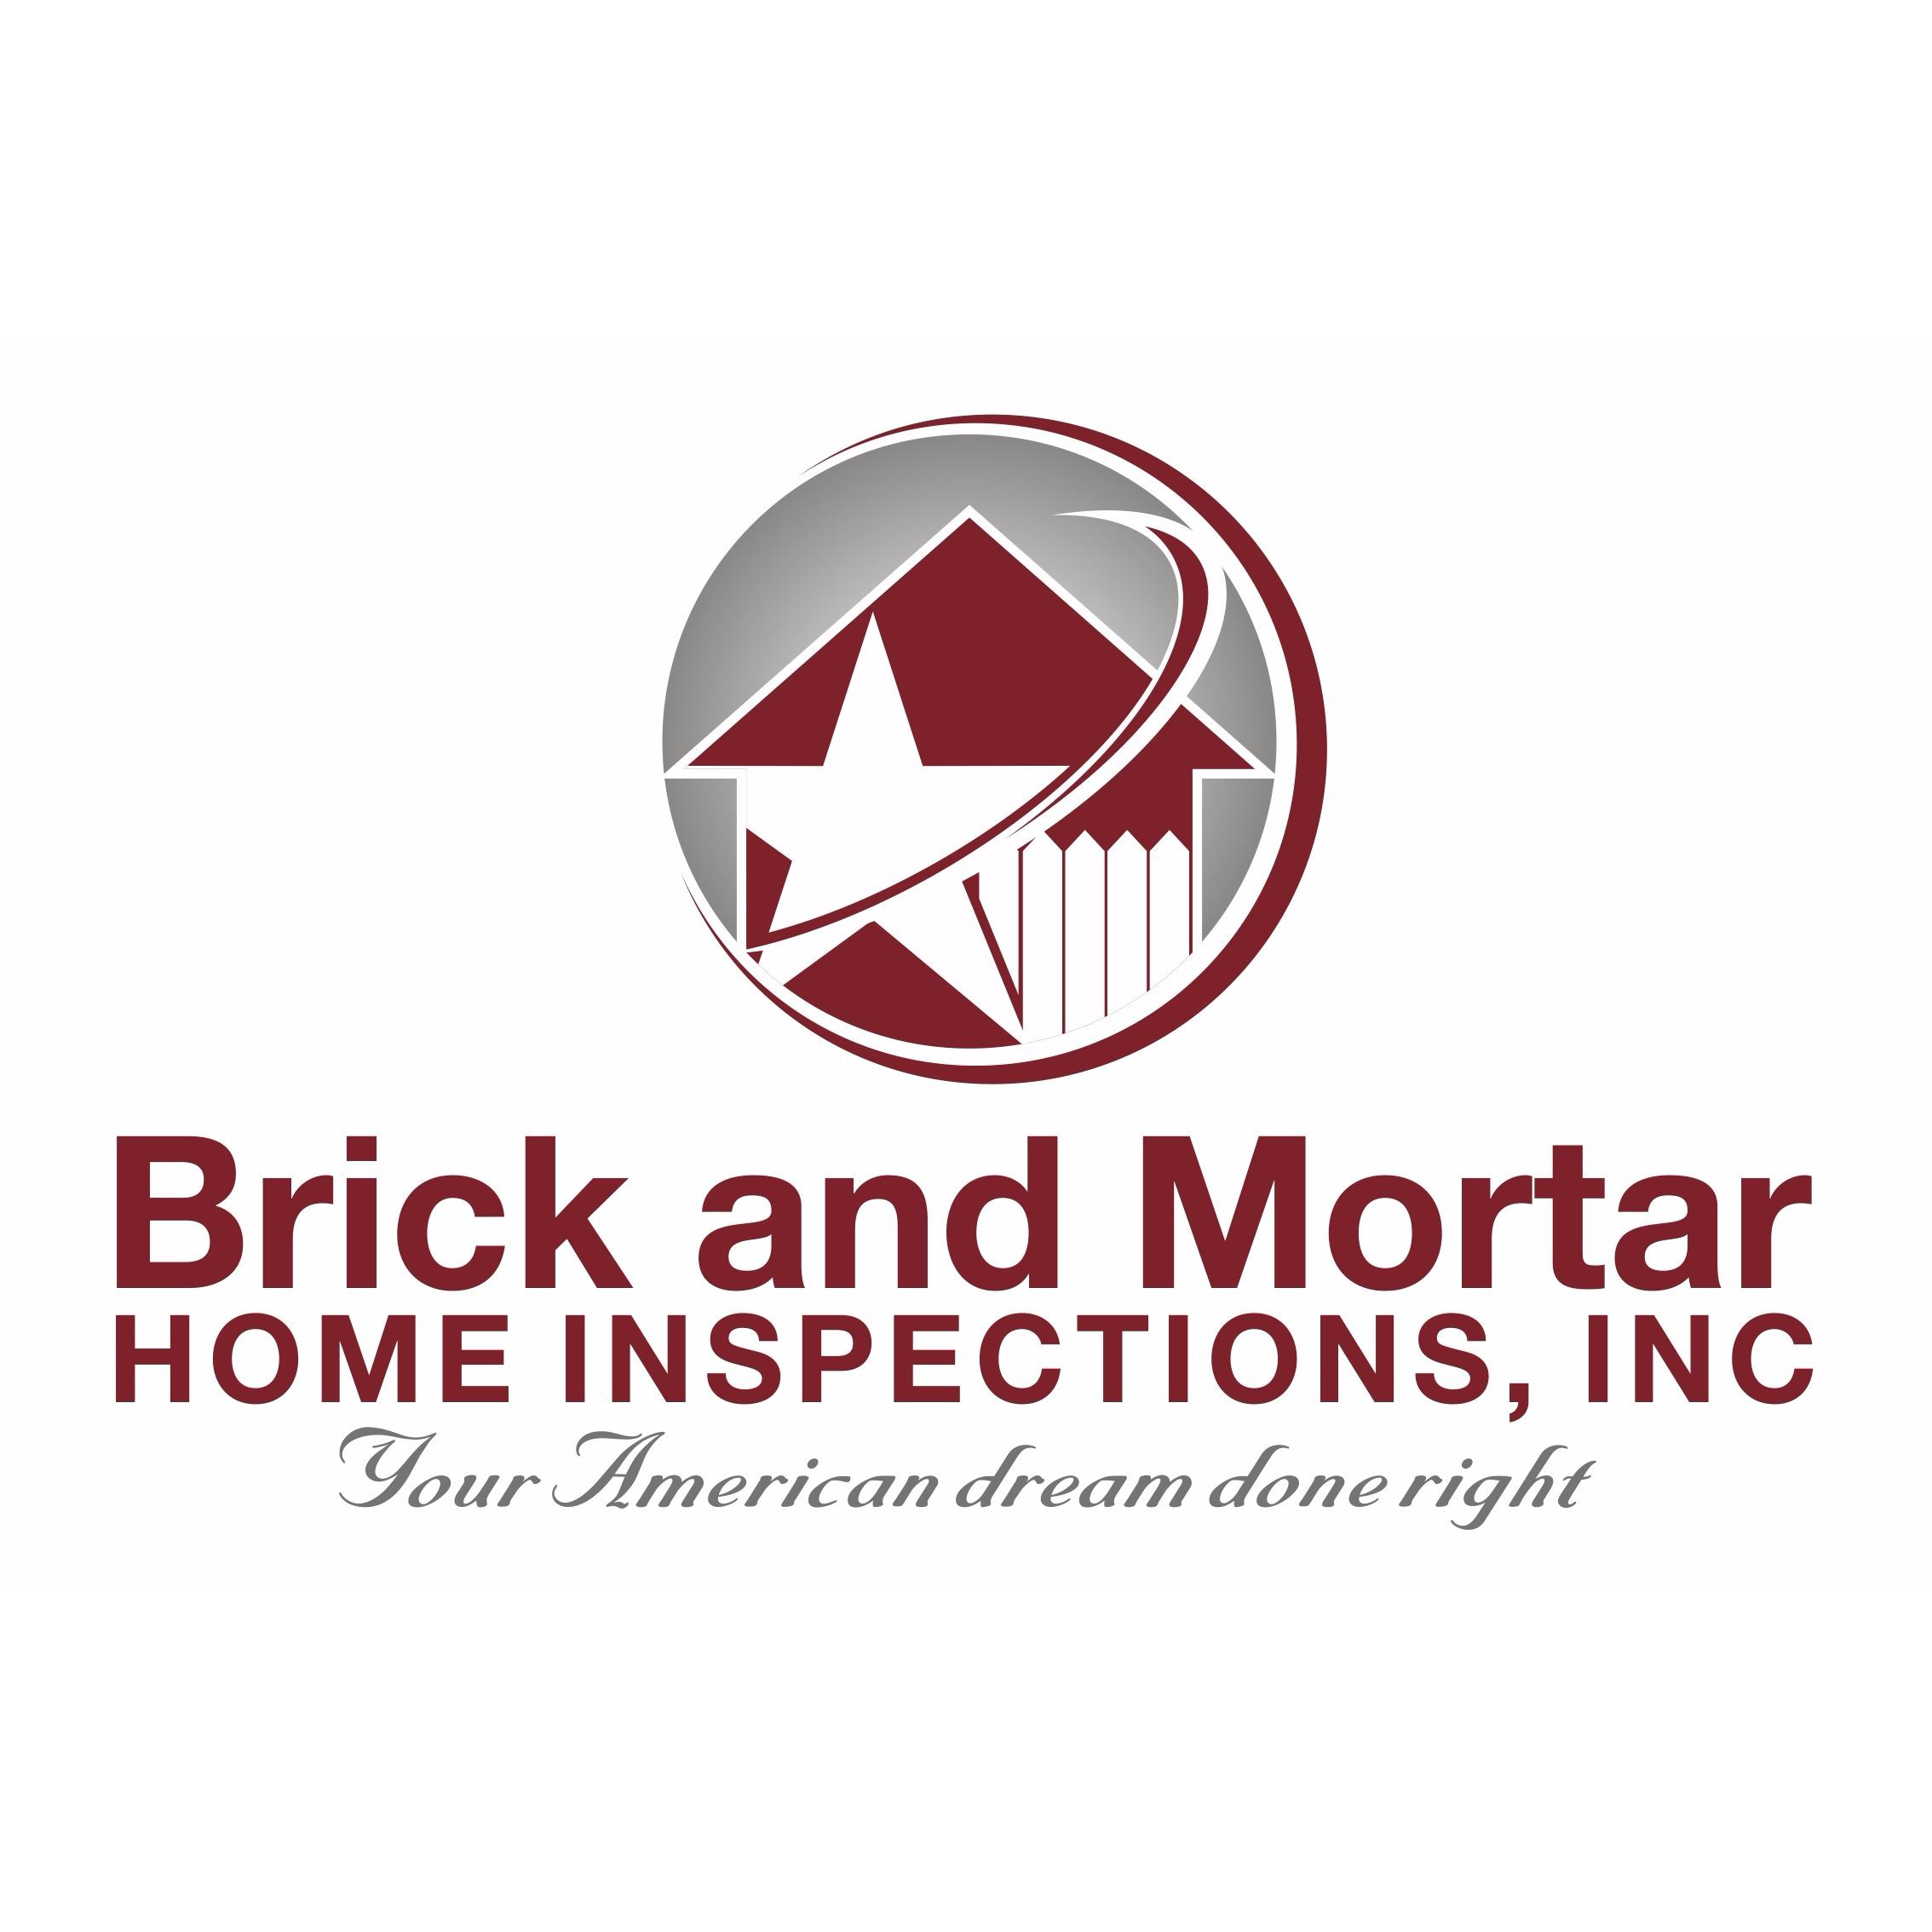 Brick and Mortar Home Inspections, Inc.